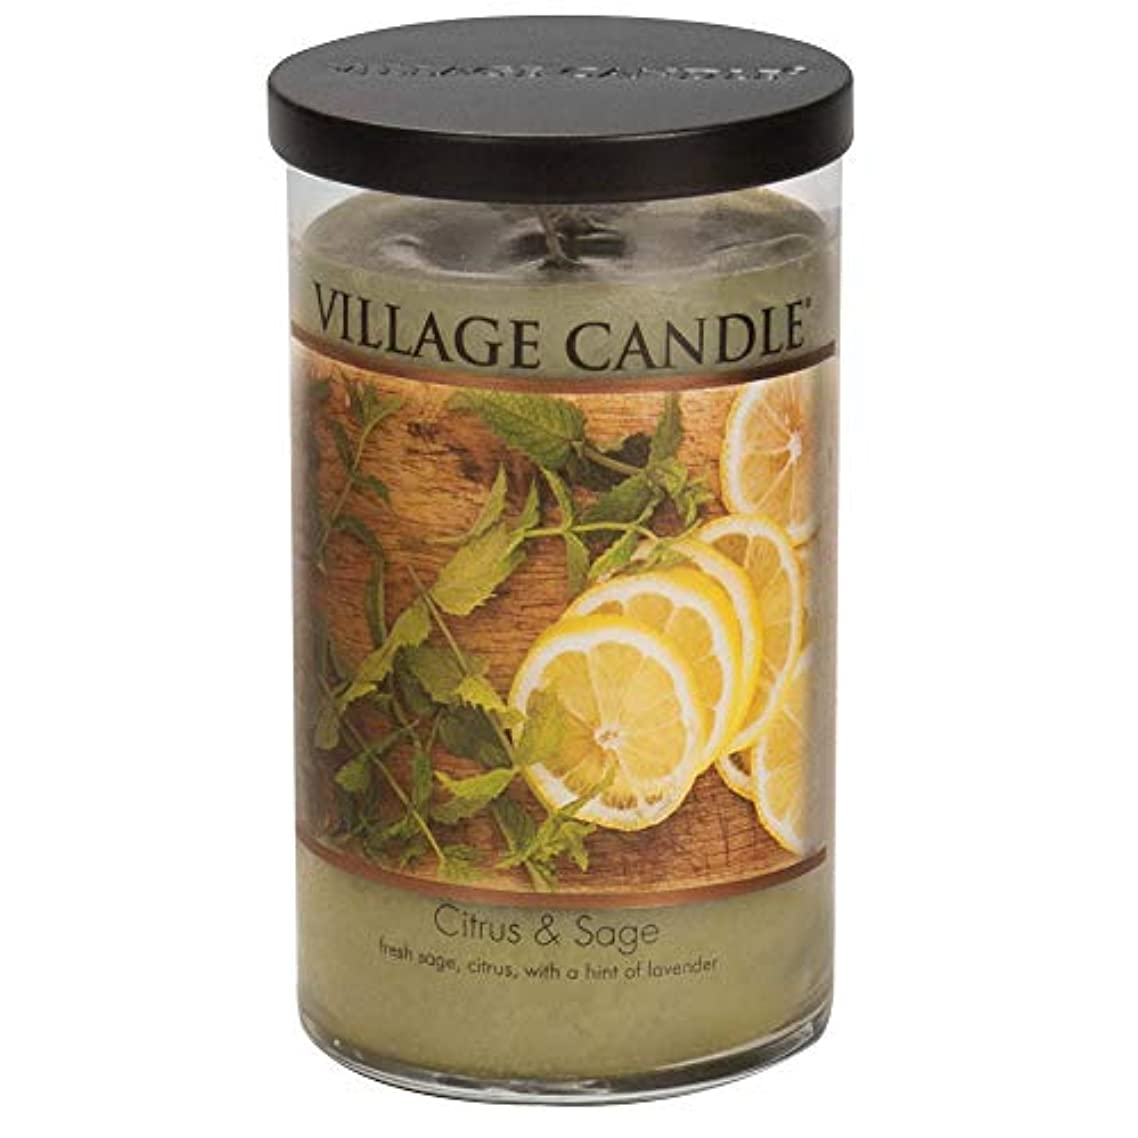 穿孔する知らせる拍手するVillage Candle Citrus & Sage 24 Oz LargeタンブラーScented Candle